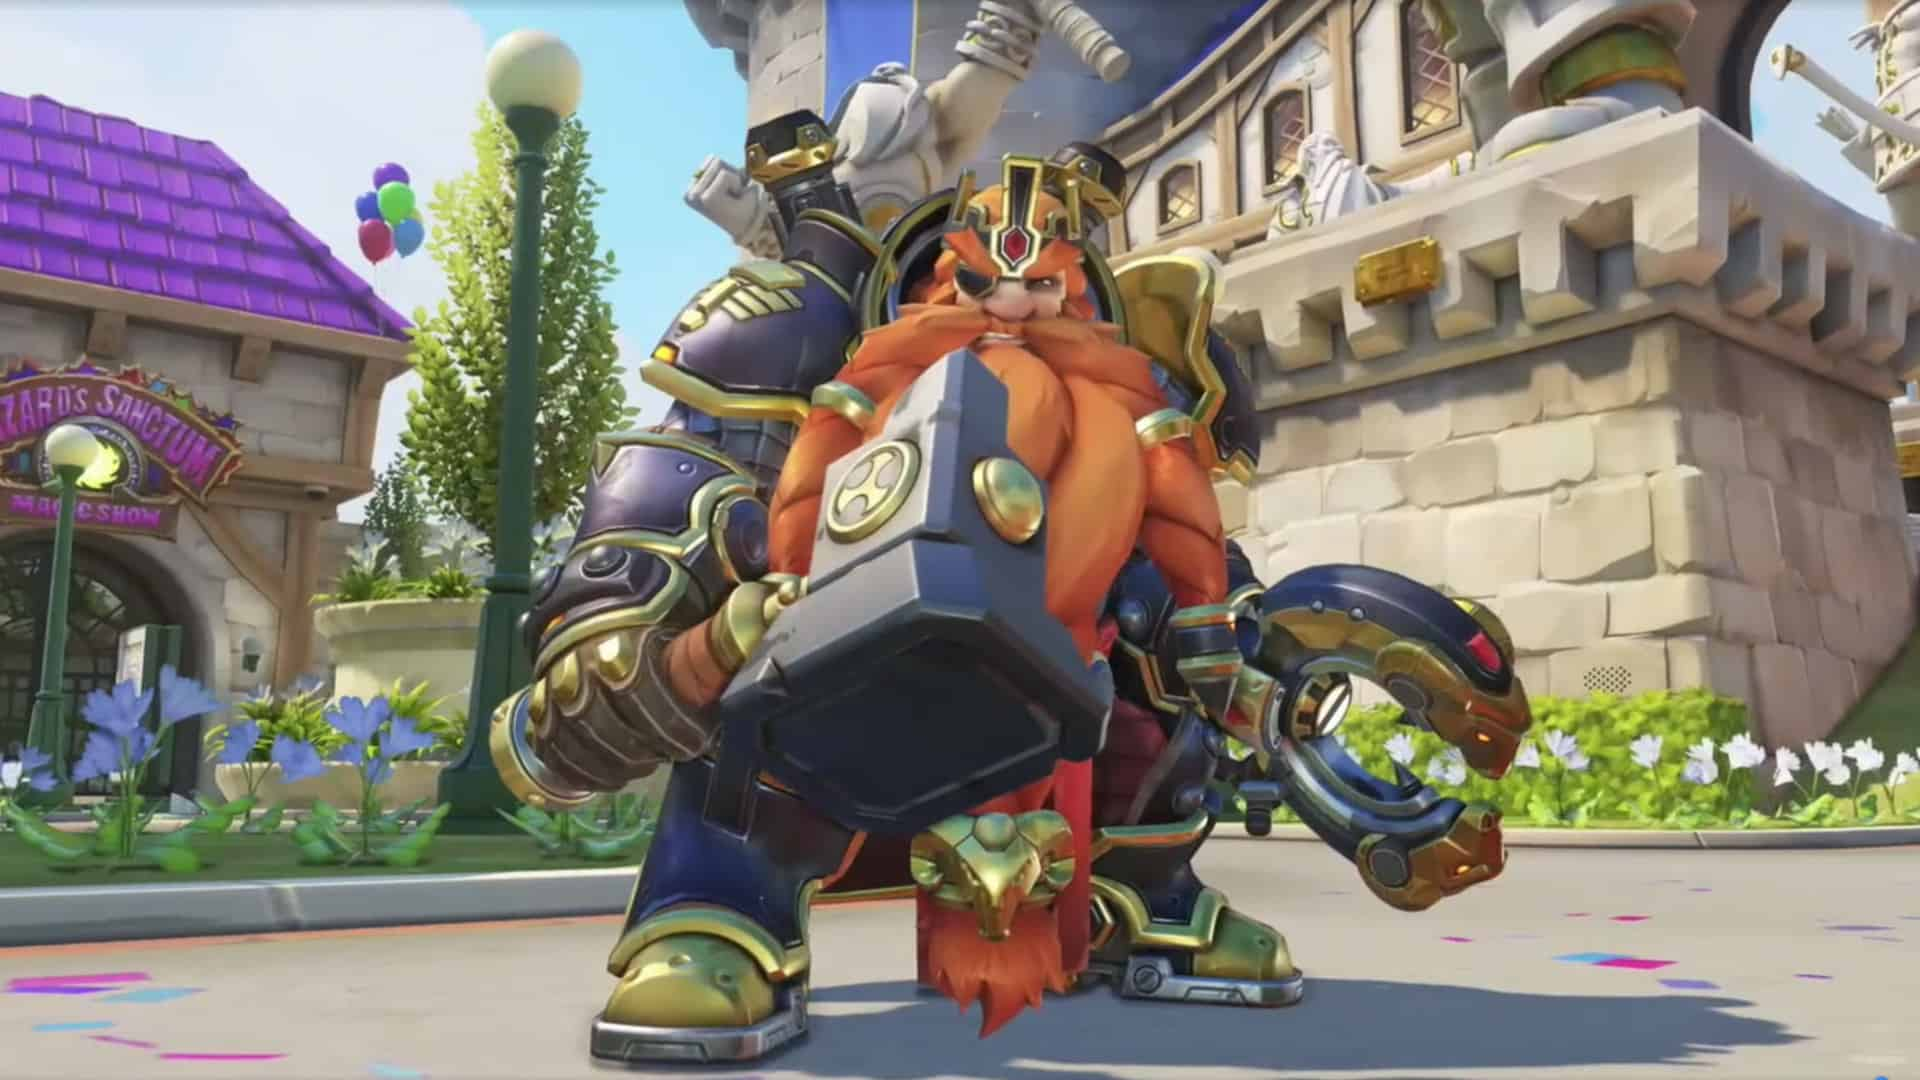 Overwatch S Blizzard World Map Is A Theme Park Based On Blizzard Games